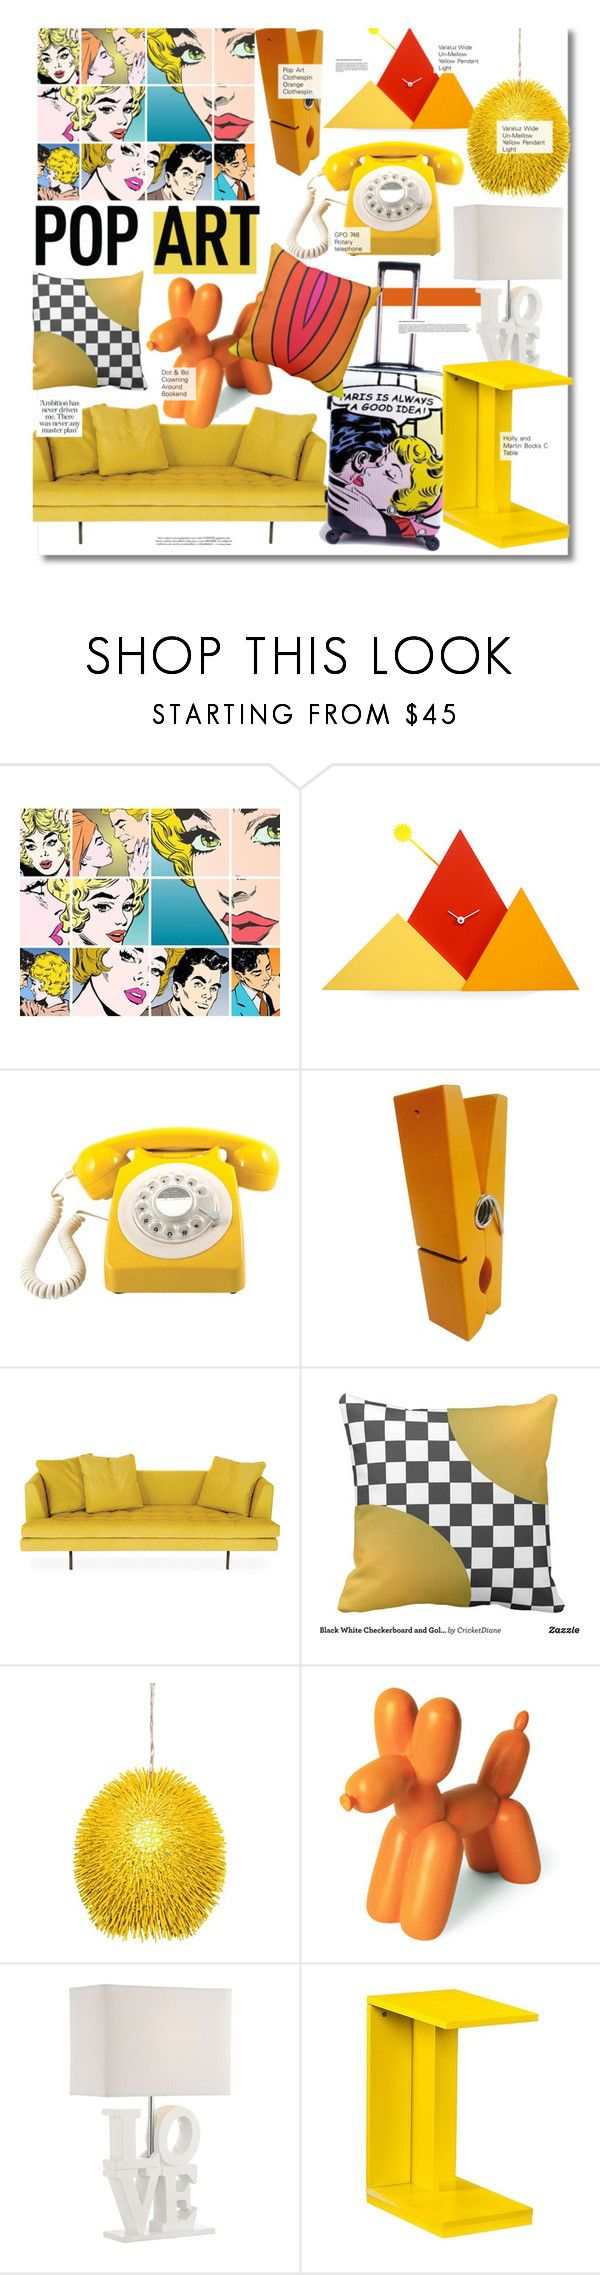 """Pop Art Decor"" by kusja on Polyvore featuring interior, interiors, interior design, home, home decor, interior decorating, Progetti, Bensen, Varaluz and Dot & Bo"